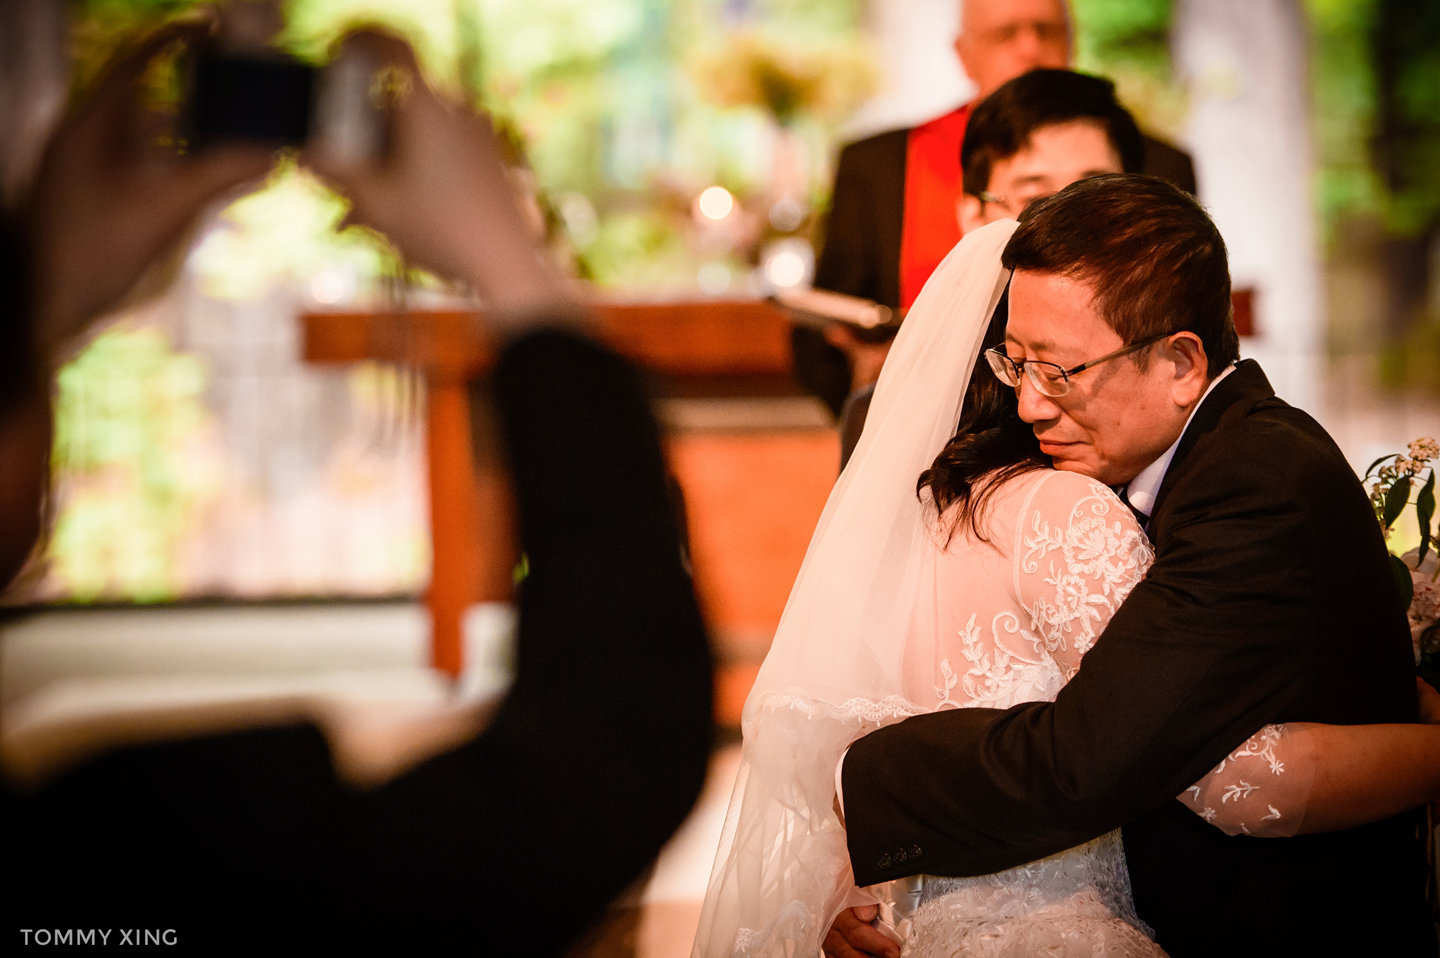 San Francisco Wedding Photography Valley Presbyterian Church WEDDING Tommy Xing Photography 洛杉矶旧金山婚礼婚纱照摄影师070.jpg